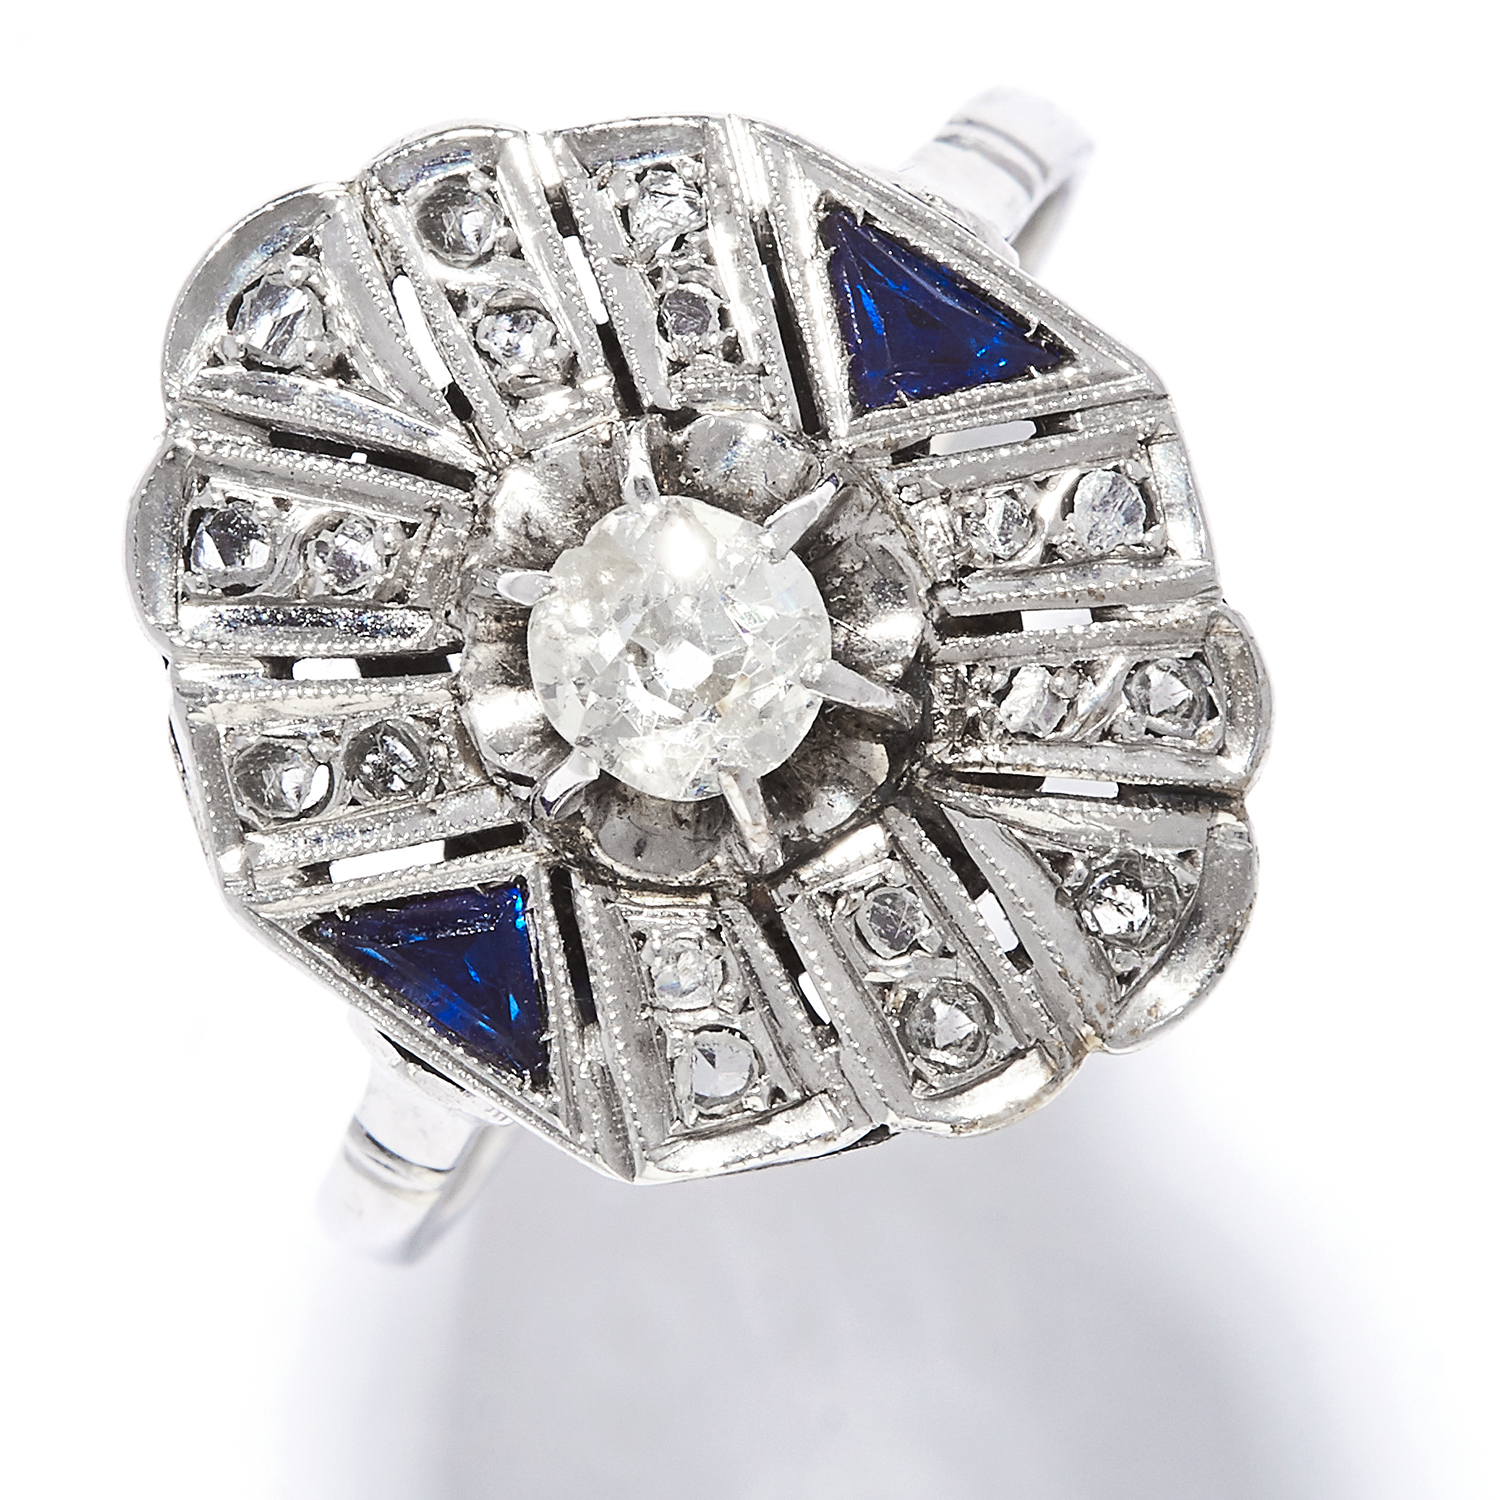 Los 42 - ART DECO DIAMOND AND SAPPHIRE RING in platinum or white gold, the oval face set with an old cut